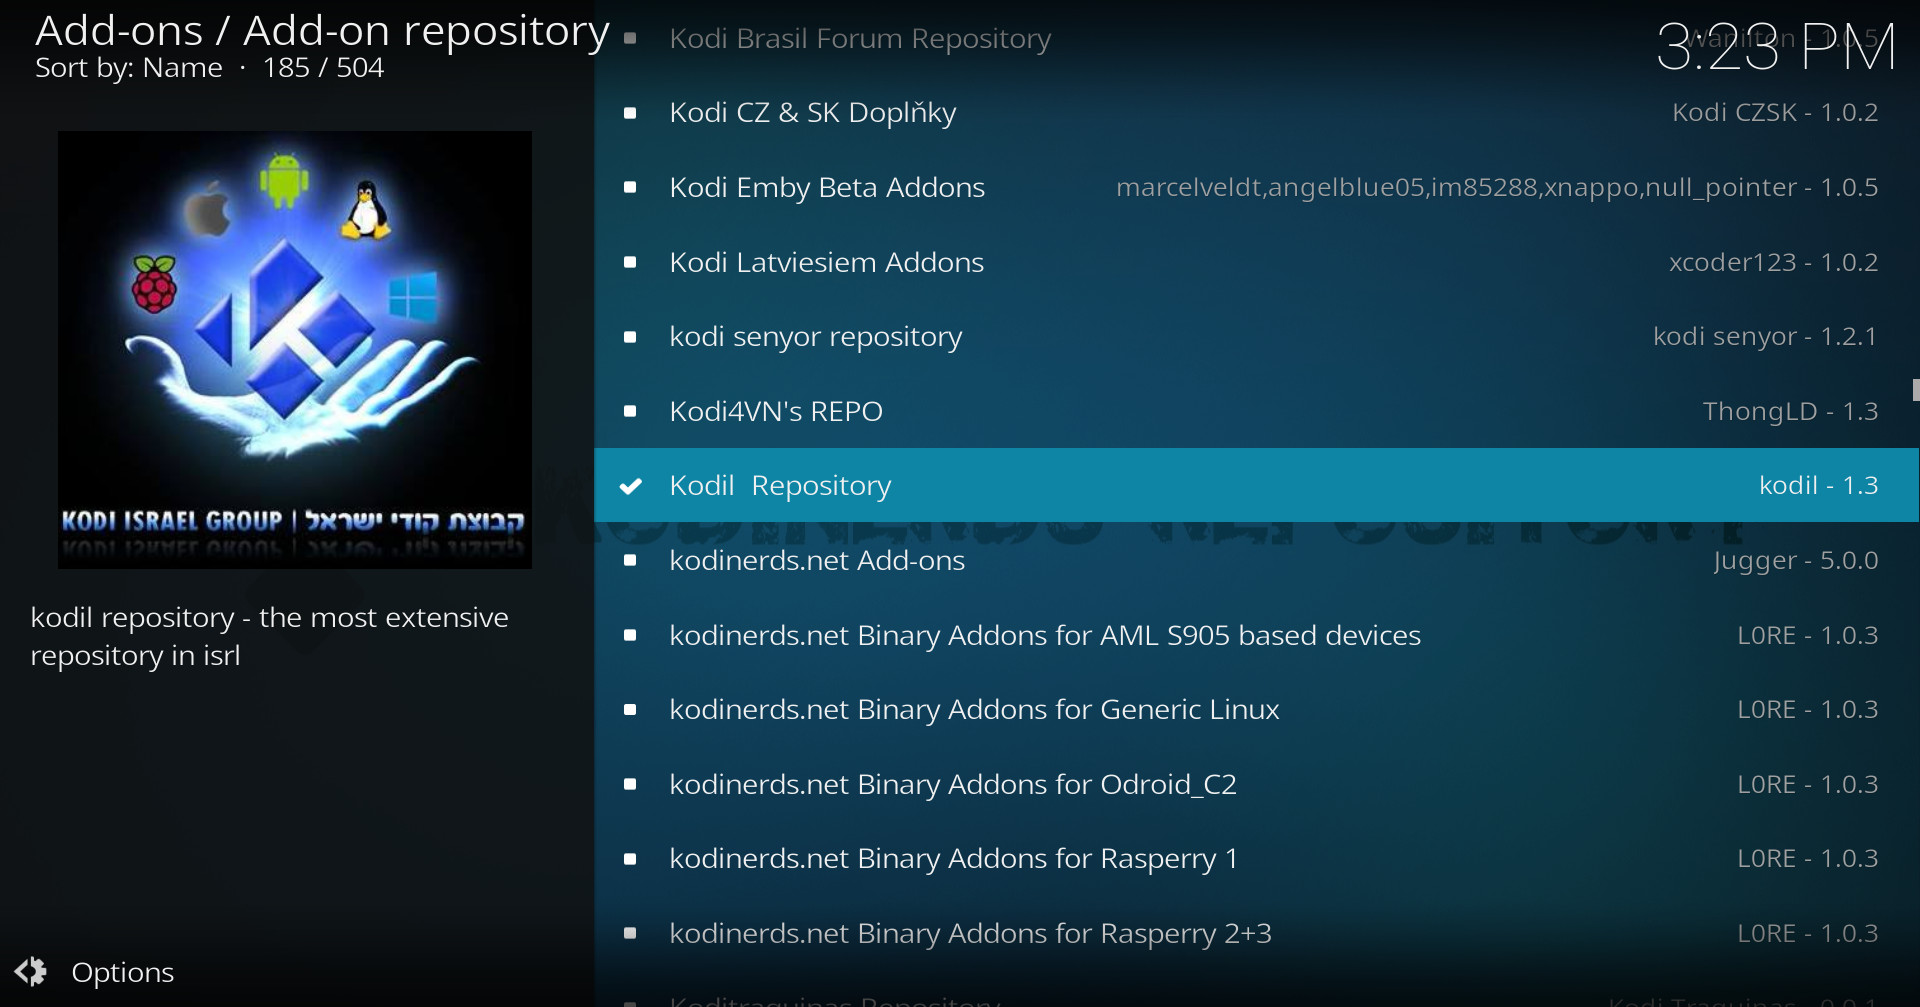 how to download kodi repositories